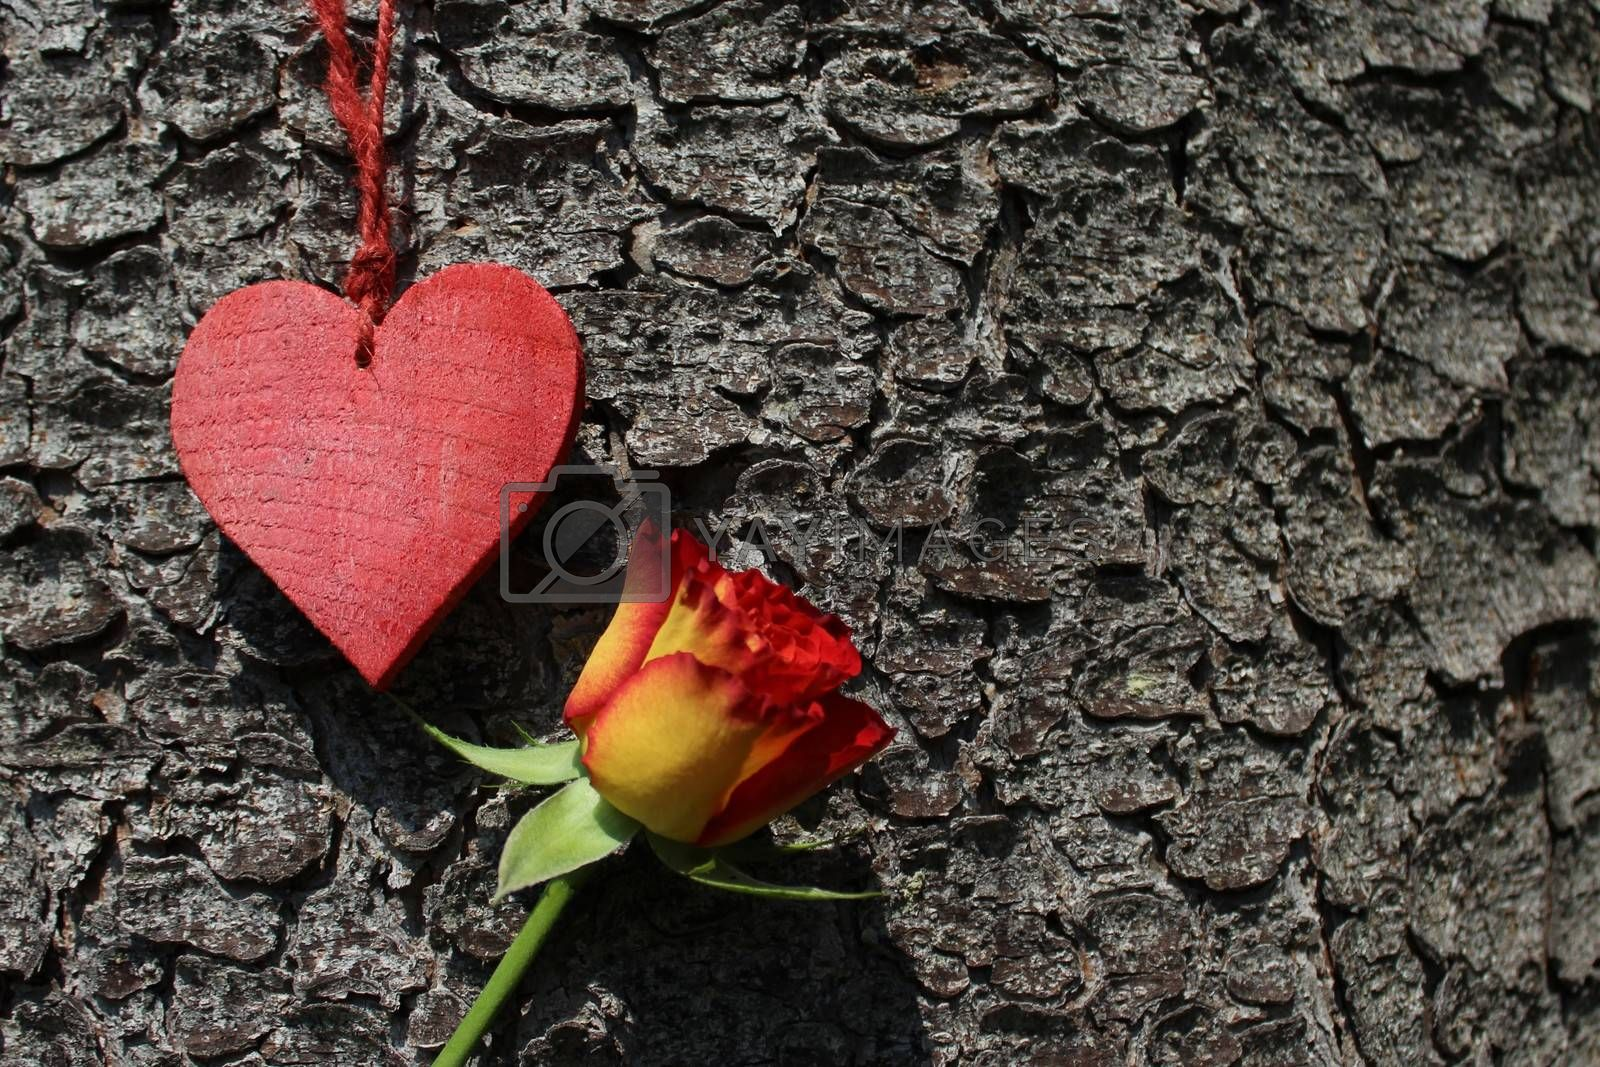 Royalty free image of a red heart and a rose by martina_unbehauen